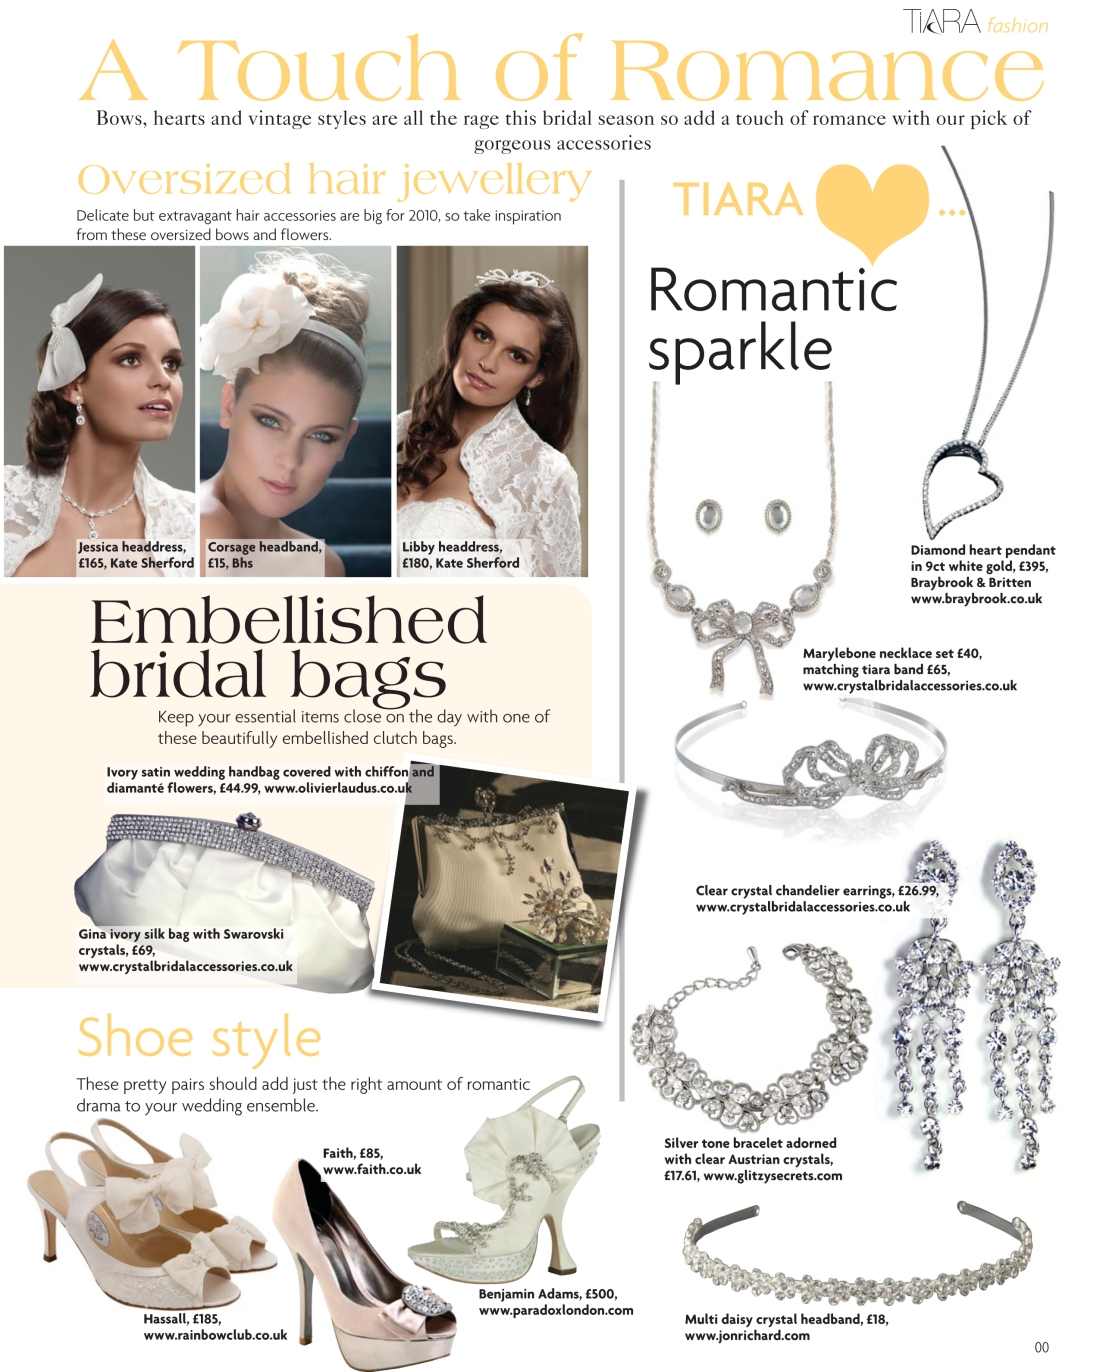 Wedding accessories fashion feature - Tiara magazine Spring 2010 issue - Amy Lewis